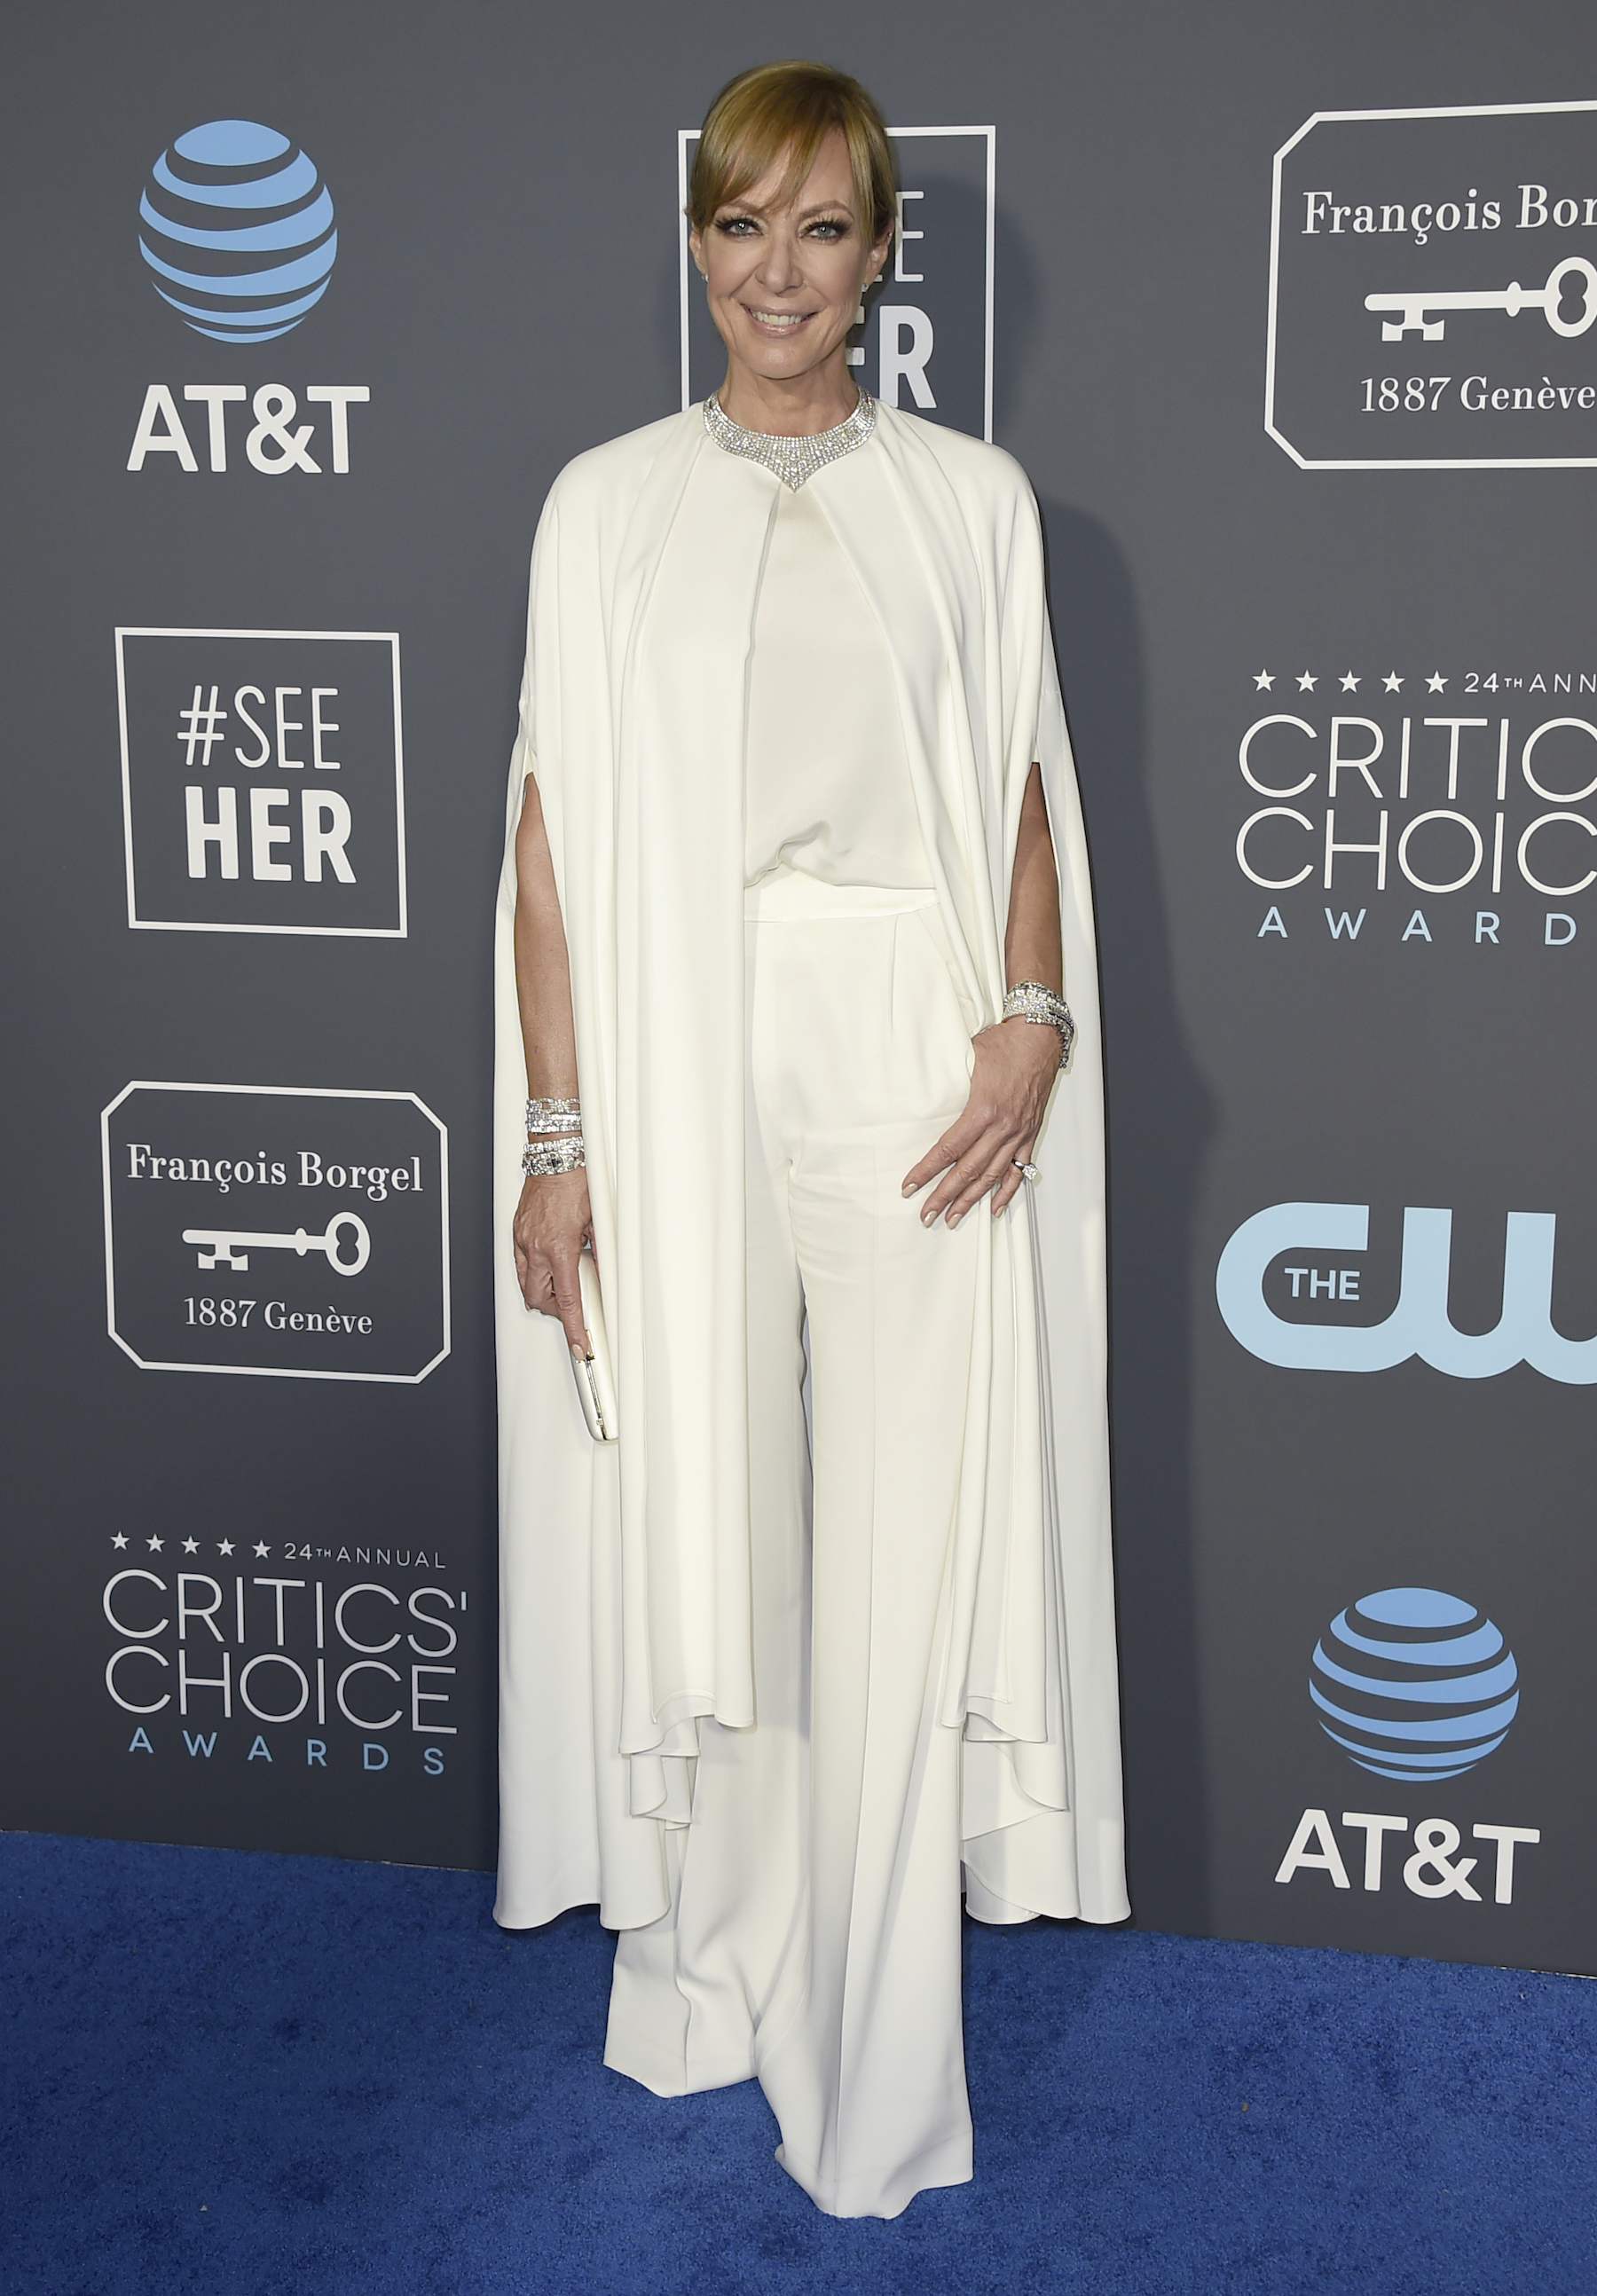 <div class='meta'><div class='origin-logo' data-origin='AP'></div><span class='caption-text' data-credit='Jordan Strauss/Invision/AP'>Allison Janney arrives at the 24th annual Critics' Choice Awards on Sunday, Jan. 13, 2019, at the Barker Hangar in Santa Monica, Calif.</span></div>